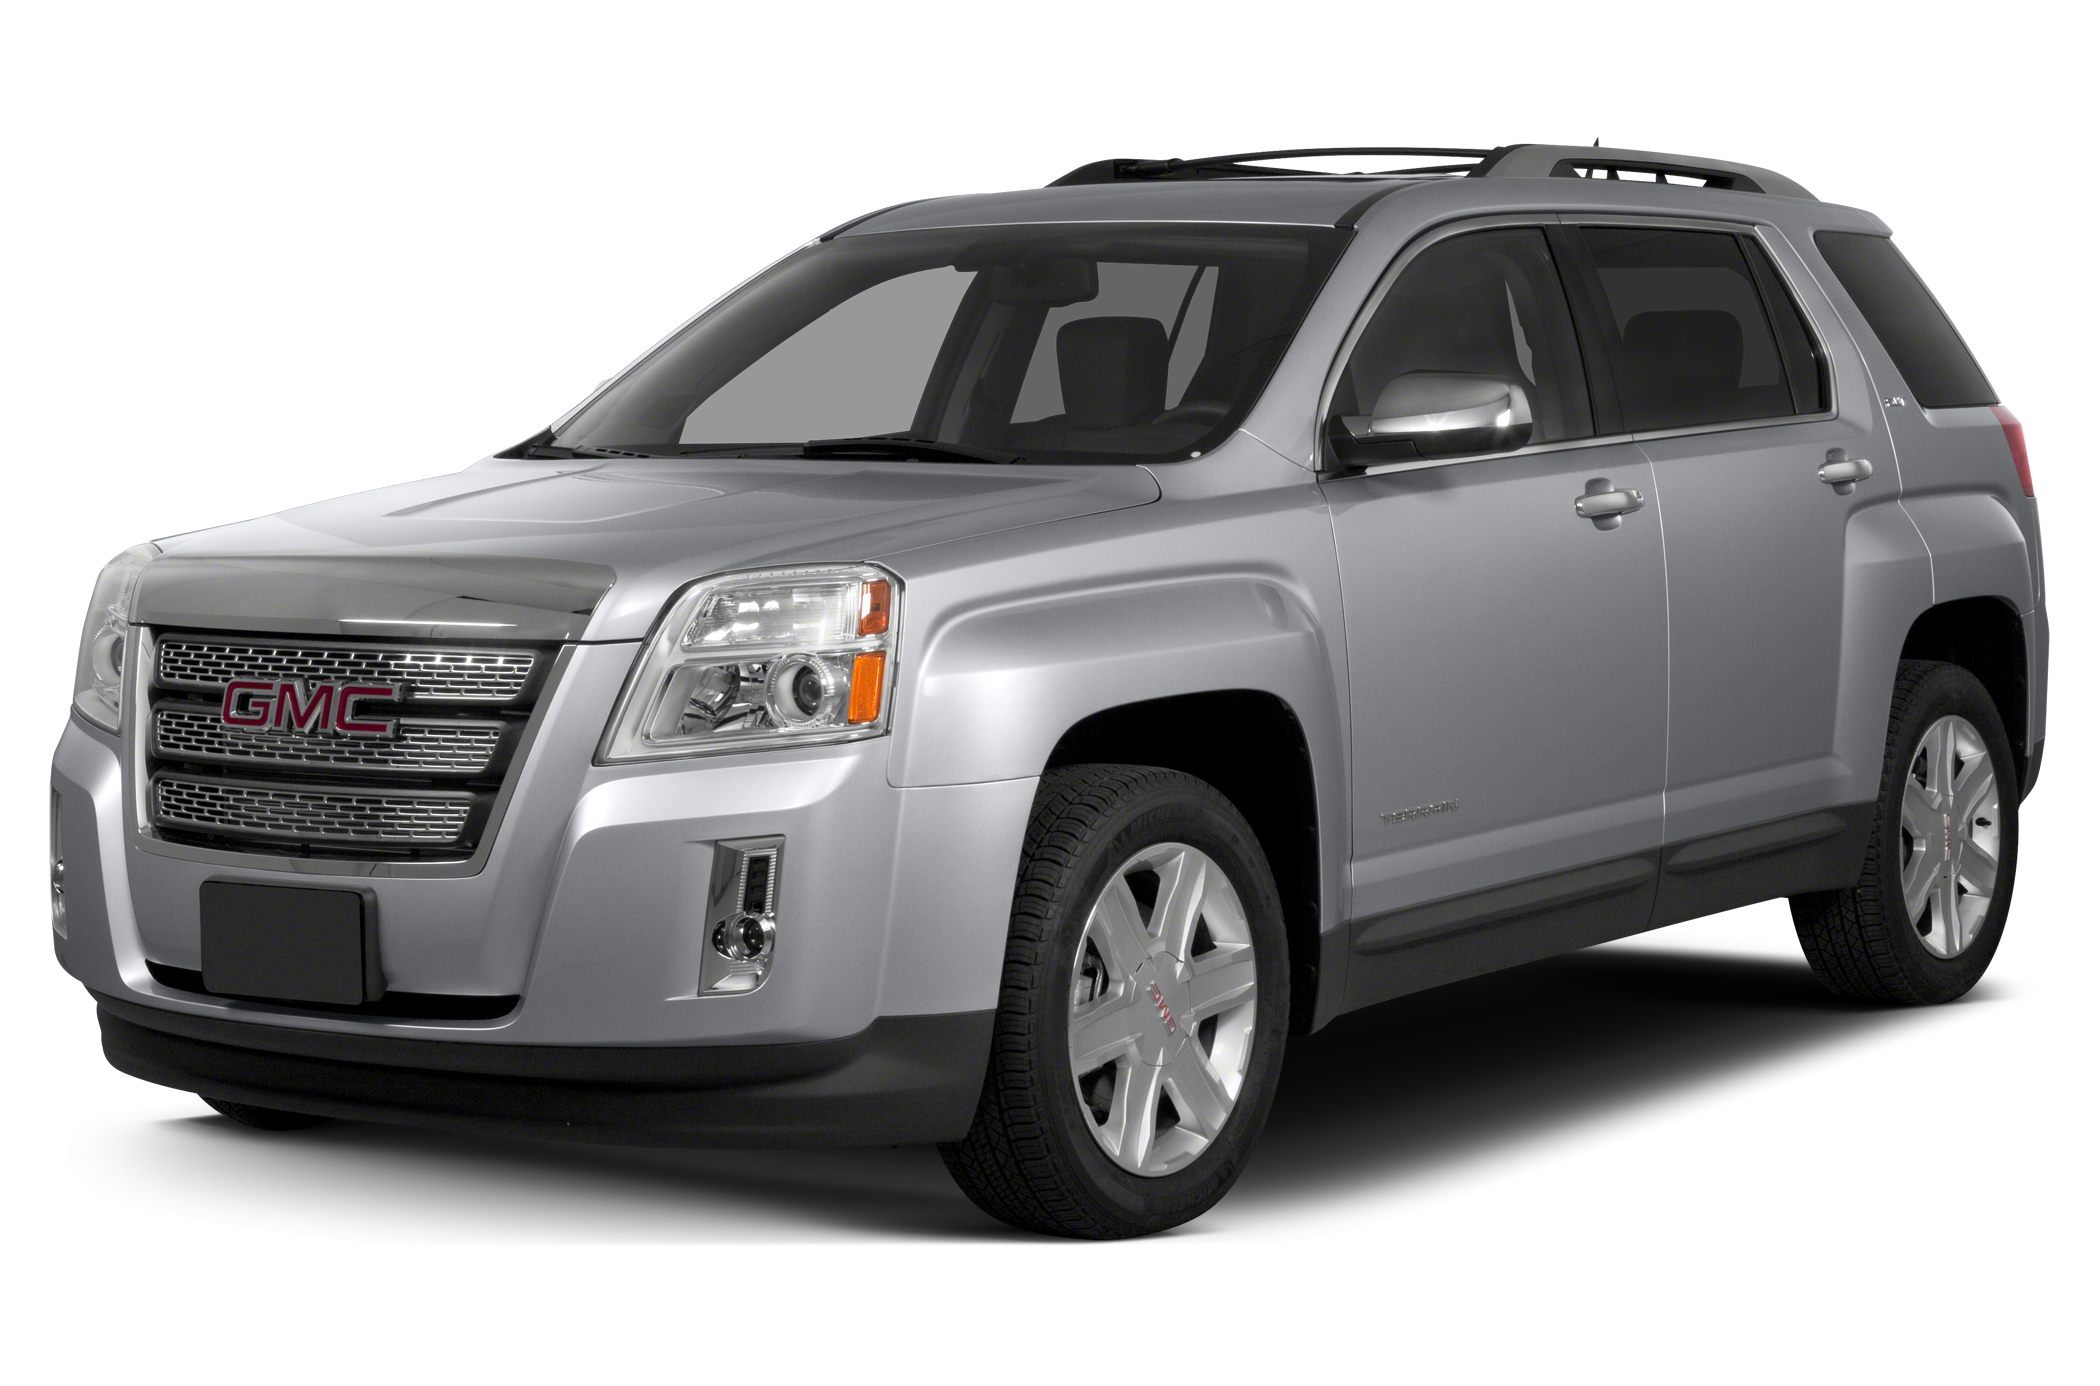 2015 GMC Terrain SLE-1 SUV for sale in West Plains for $27,980 with 0 miles.